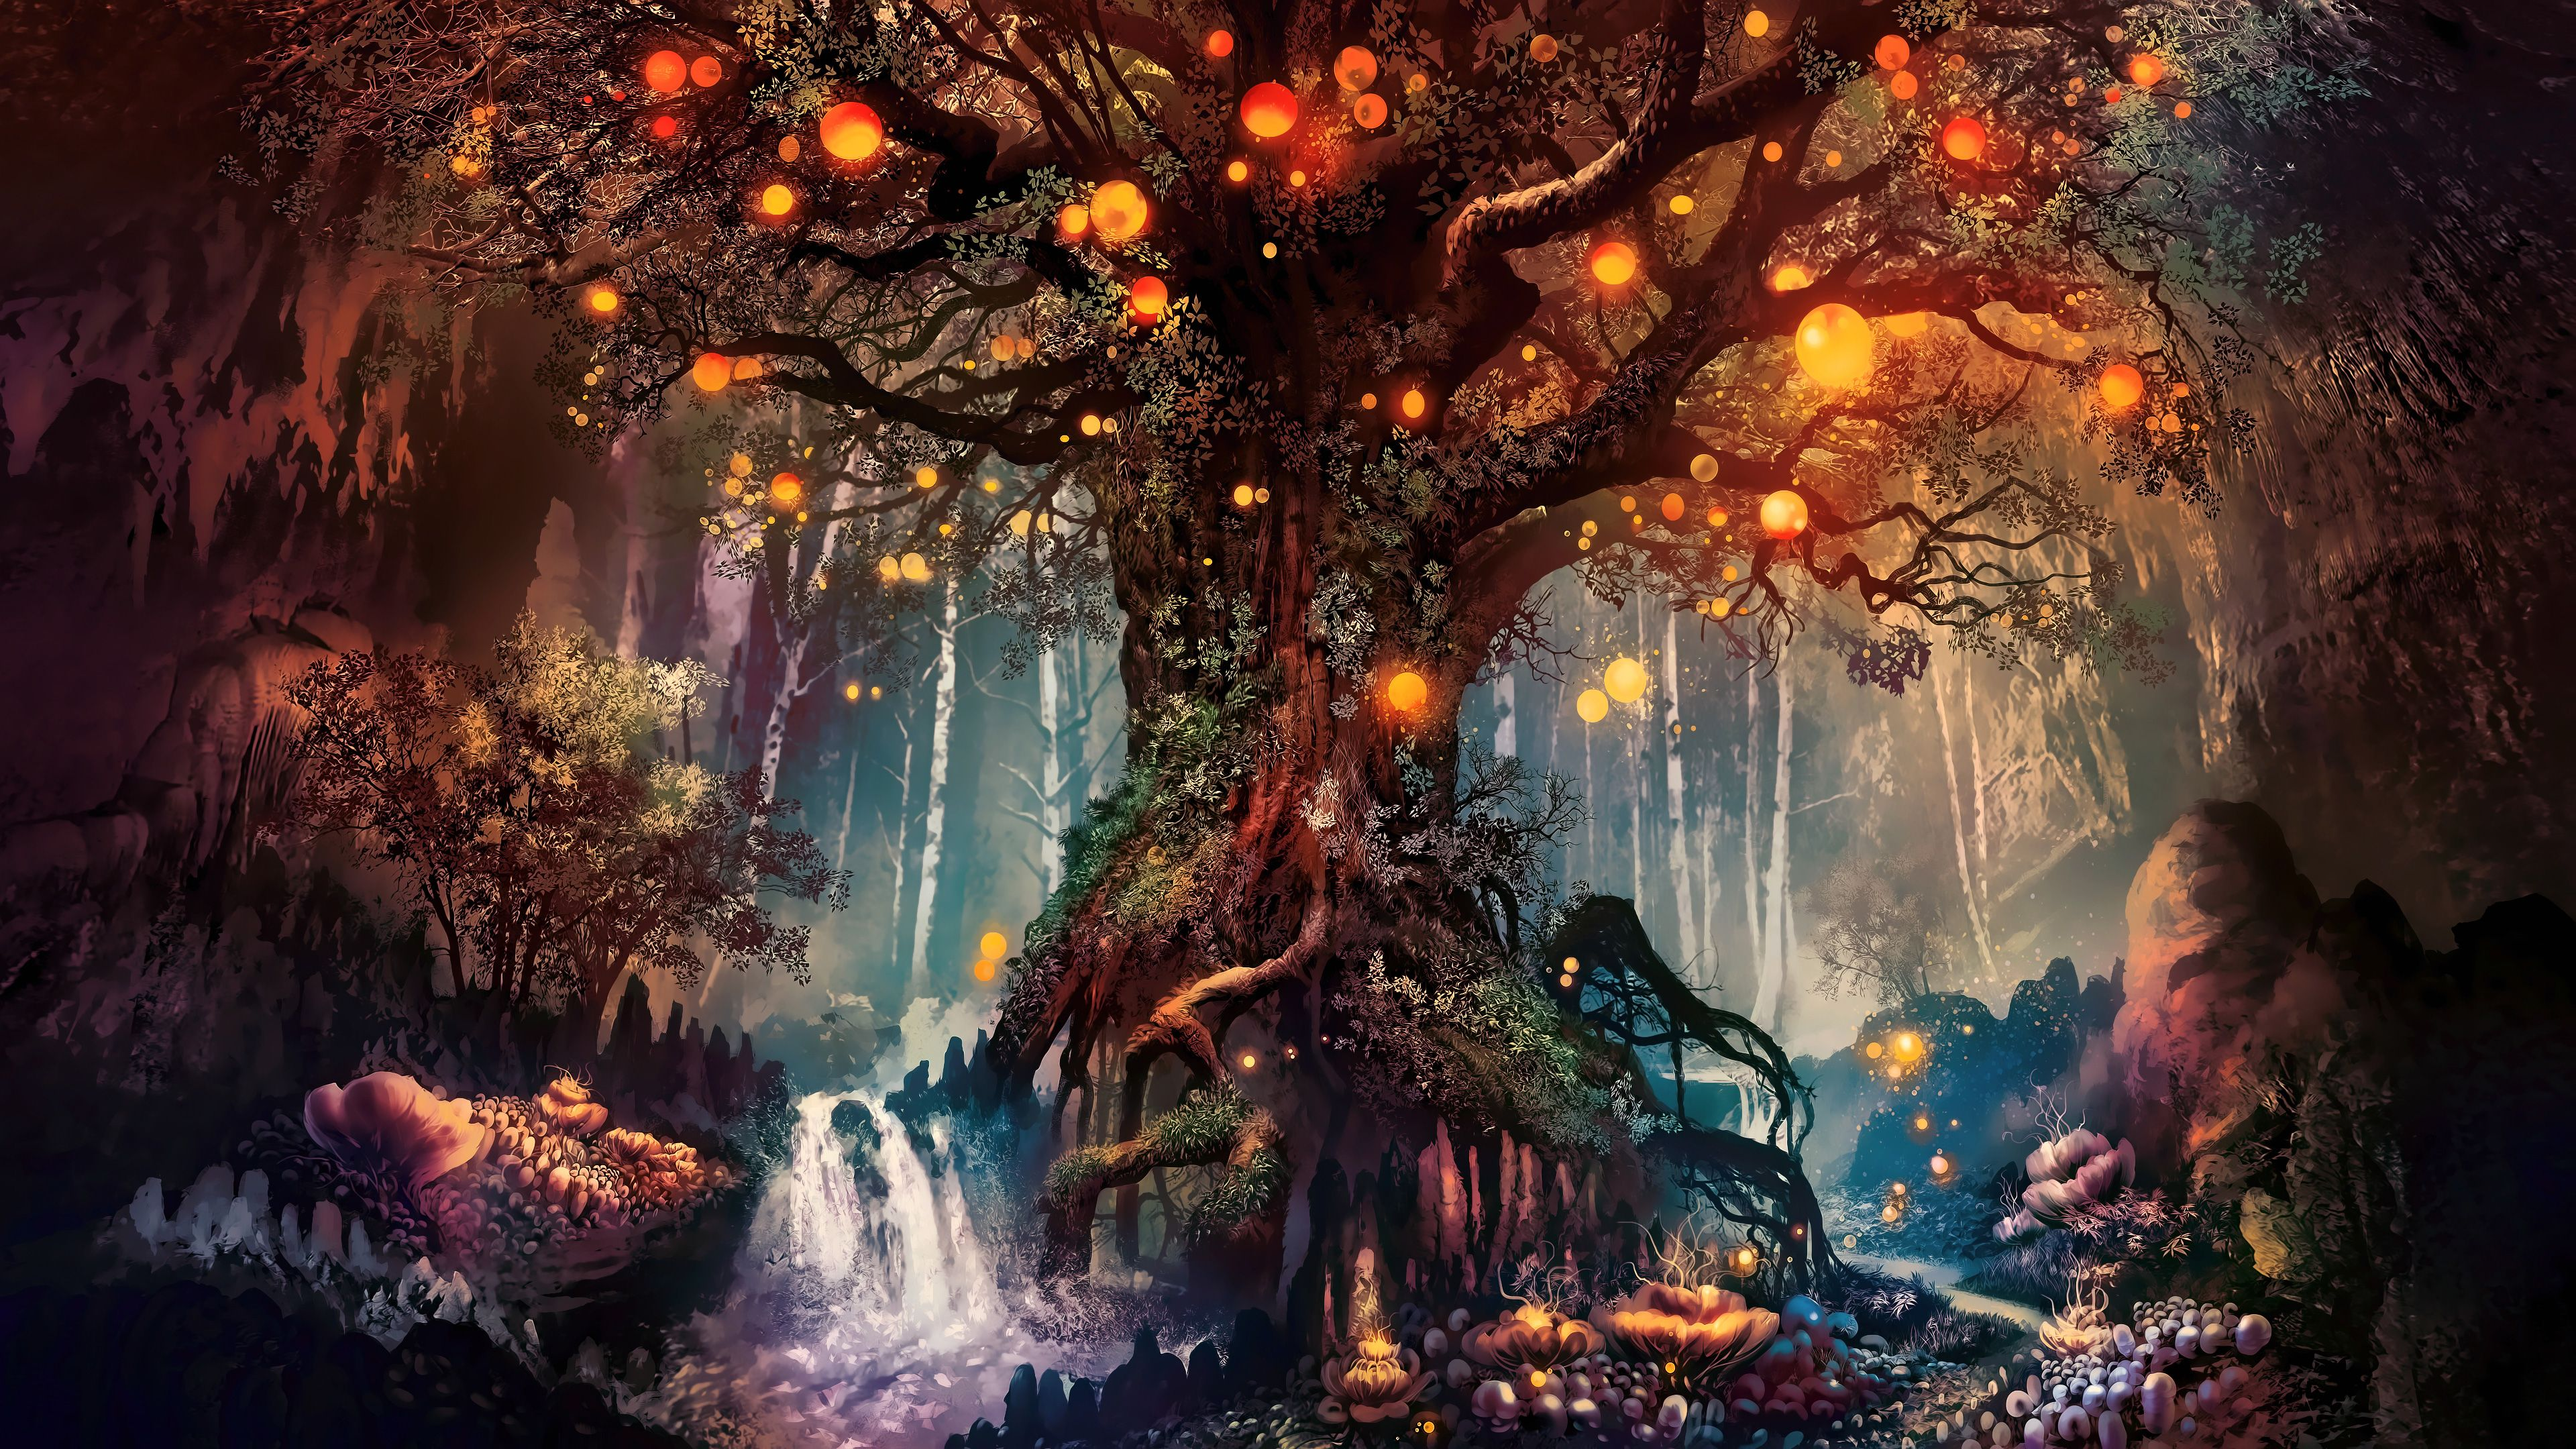 Forest Fantasy Artwork 4k Hd Wallpapers Forest Wallpapers Fantasy Wallpapers Digital Art Wallpapers Artwork Wallpapers Ar Fantasy Artwork Tree Art Artwork